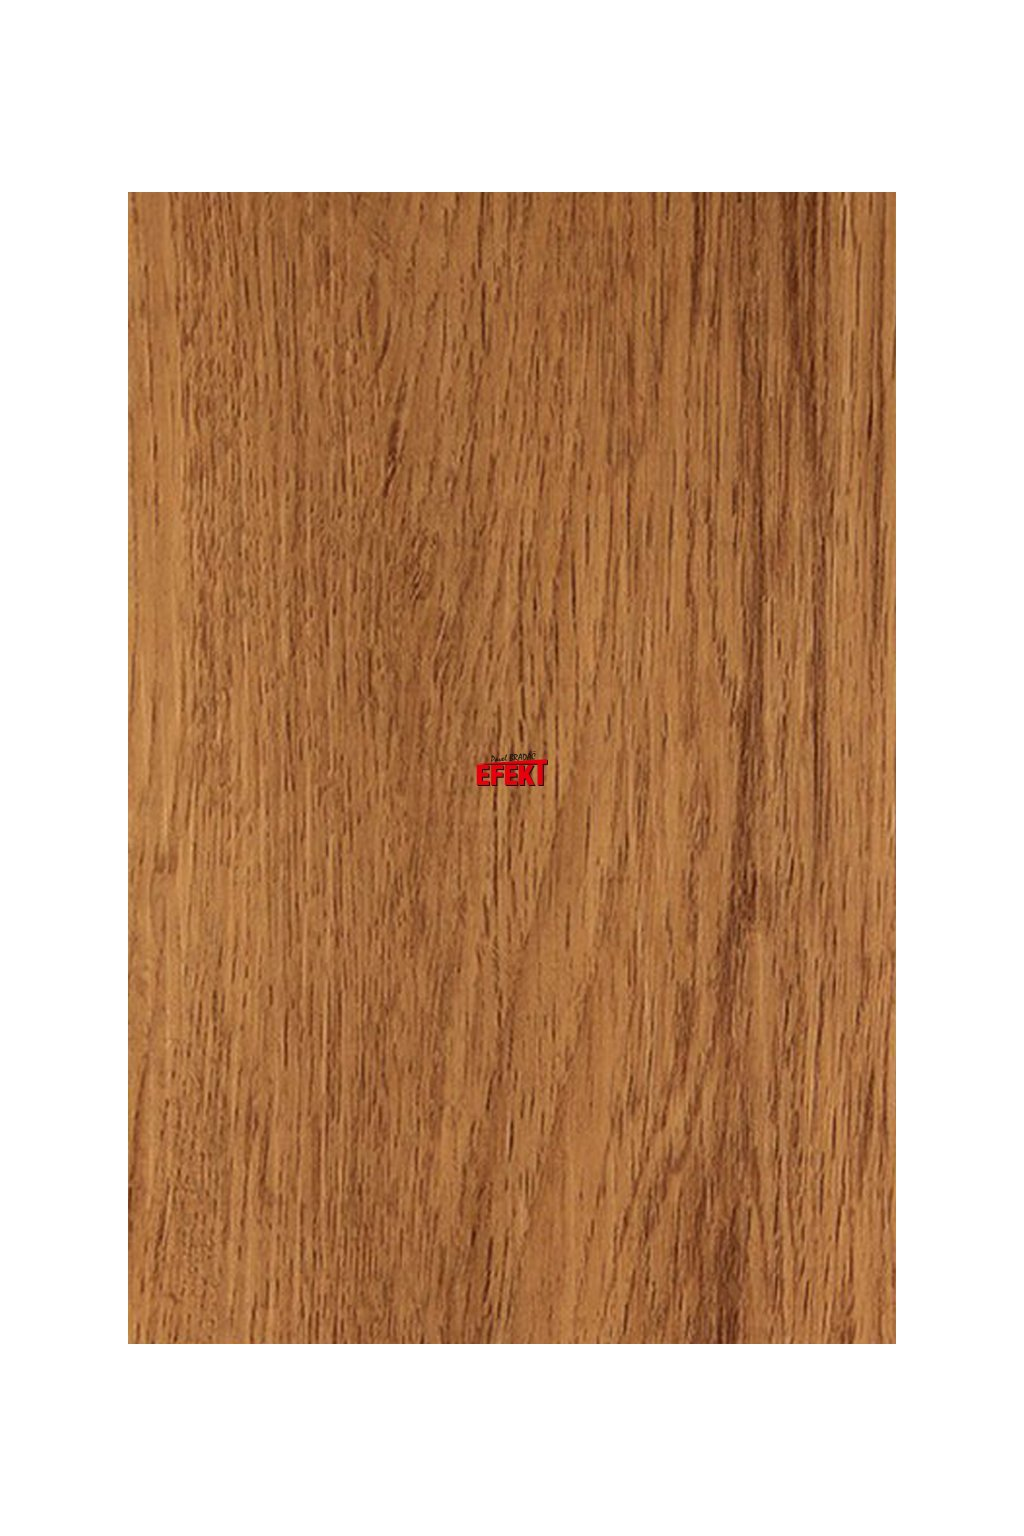 Comfort Floors-Honey Oak